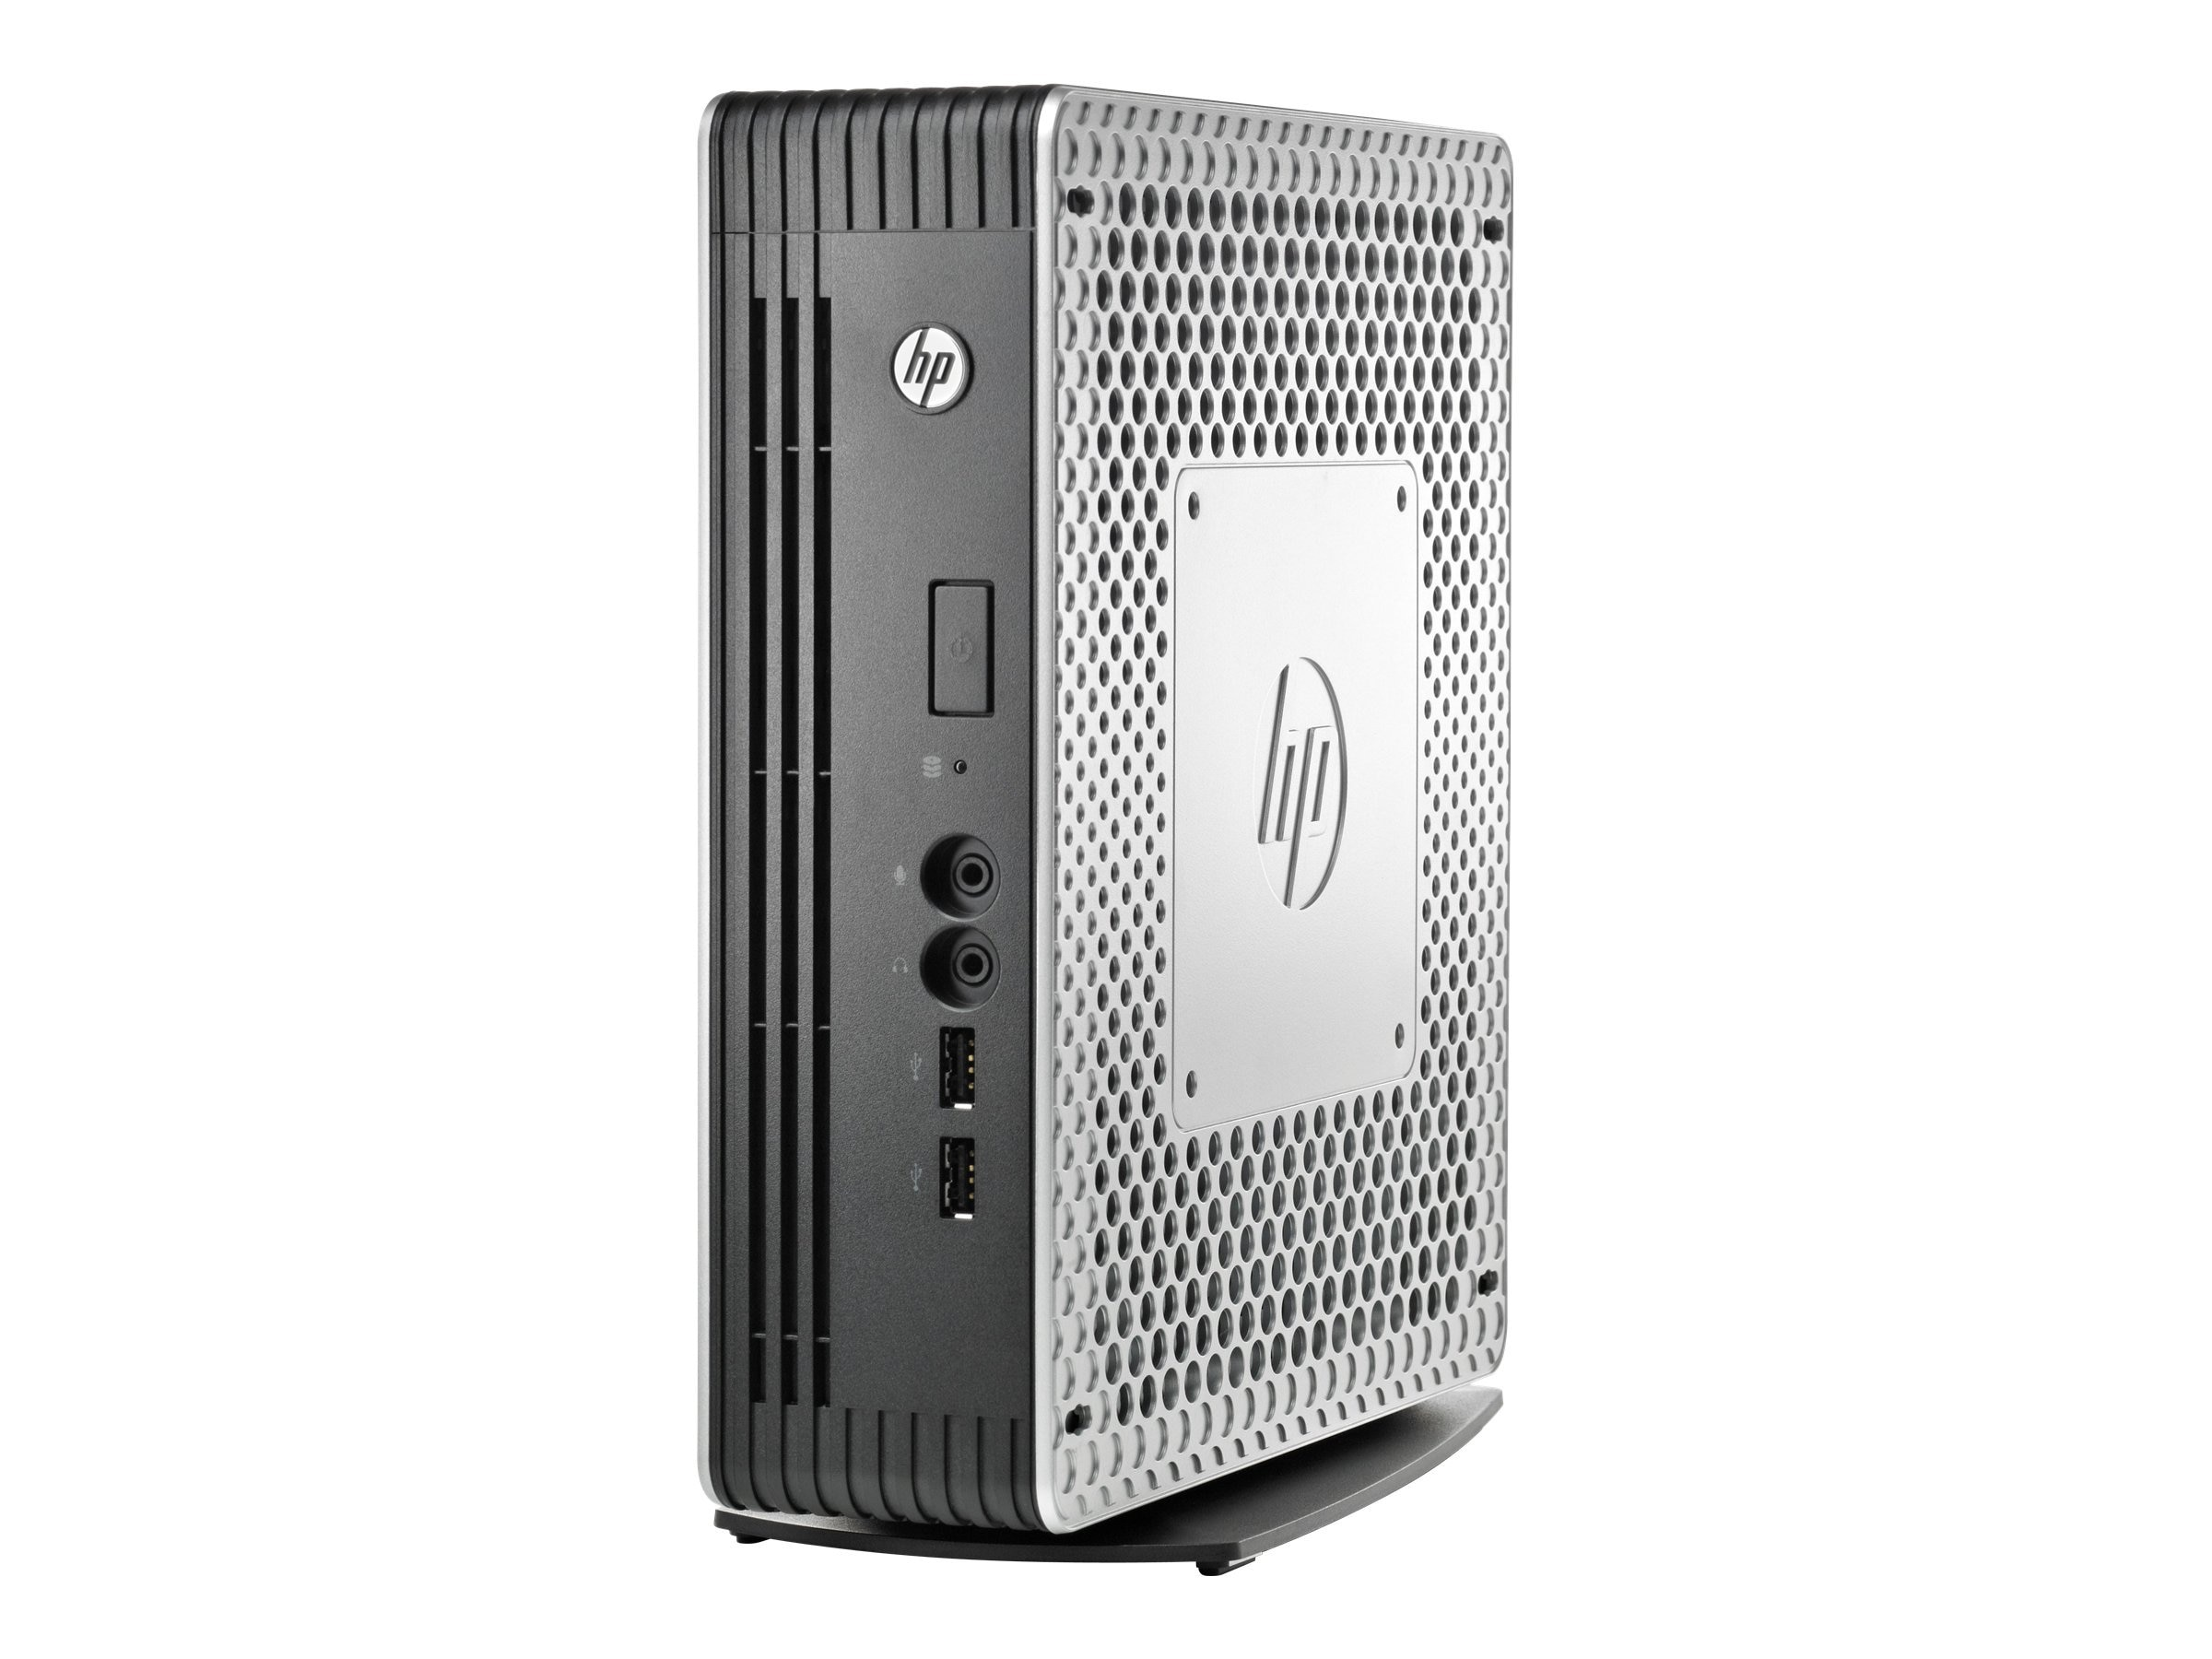 HP t610 PLUS Flexible Thin Client T56N 1.65GHz 4GB RAM 16GB Flash FirePro2460 GbE abgn WES7E